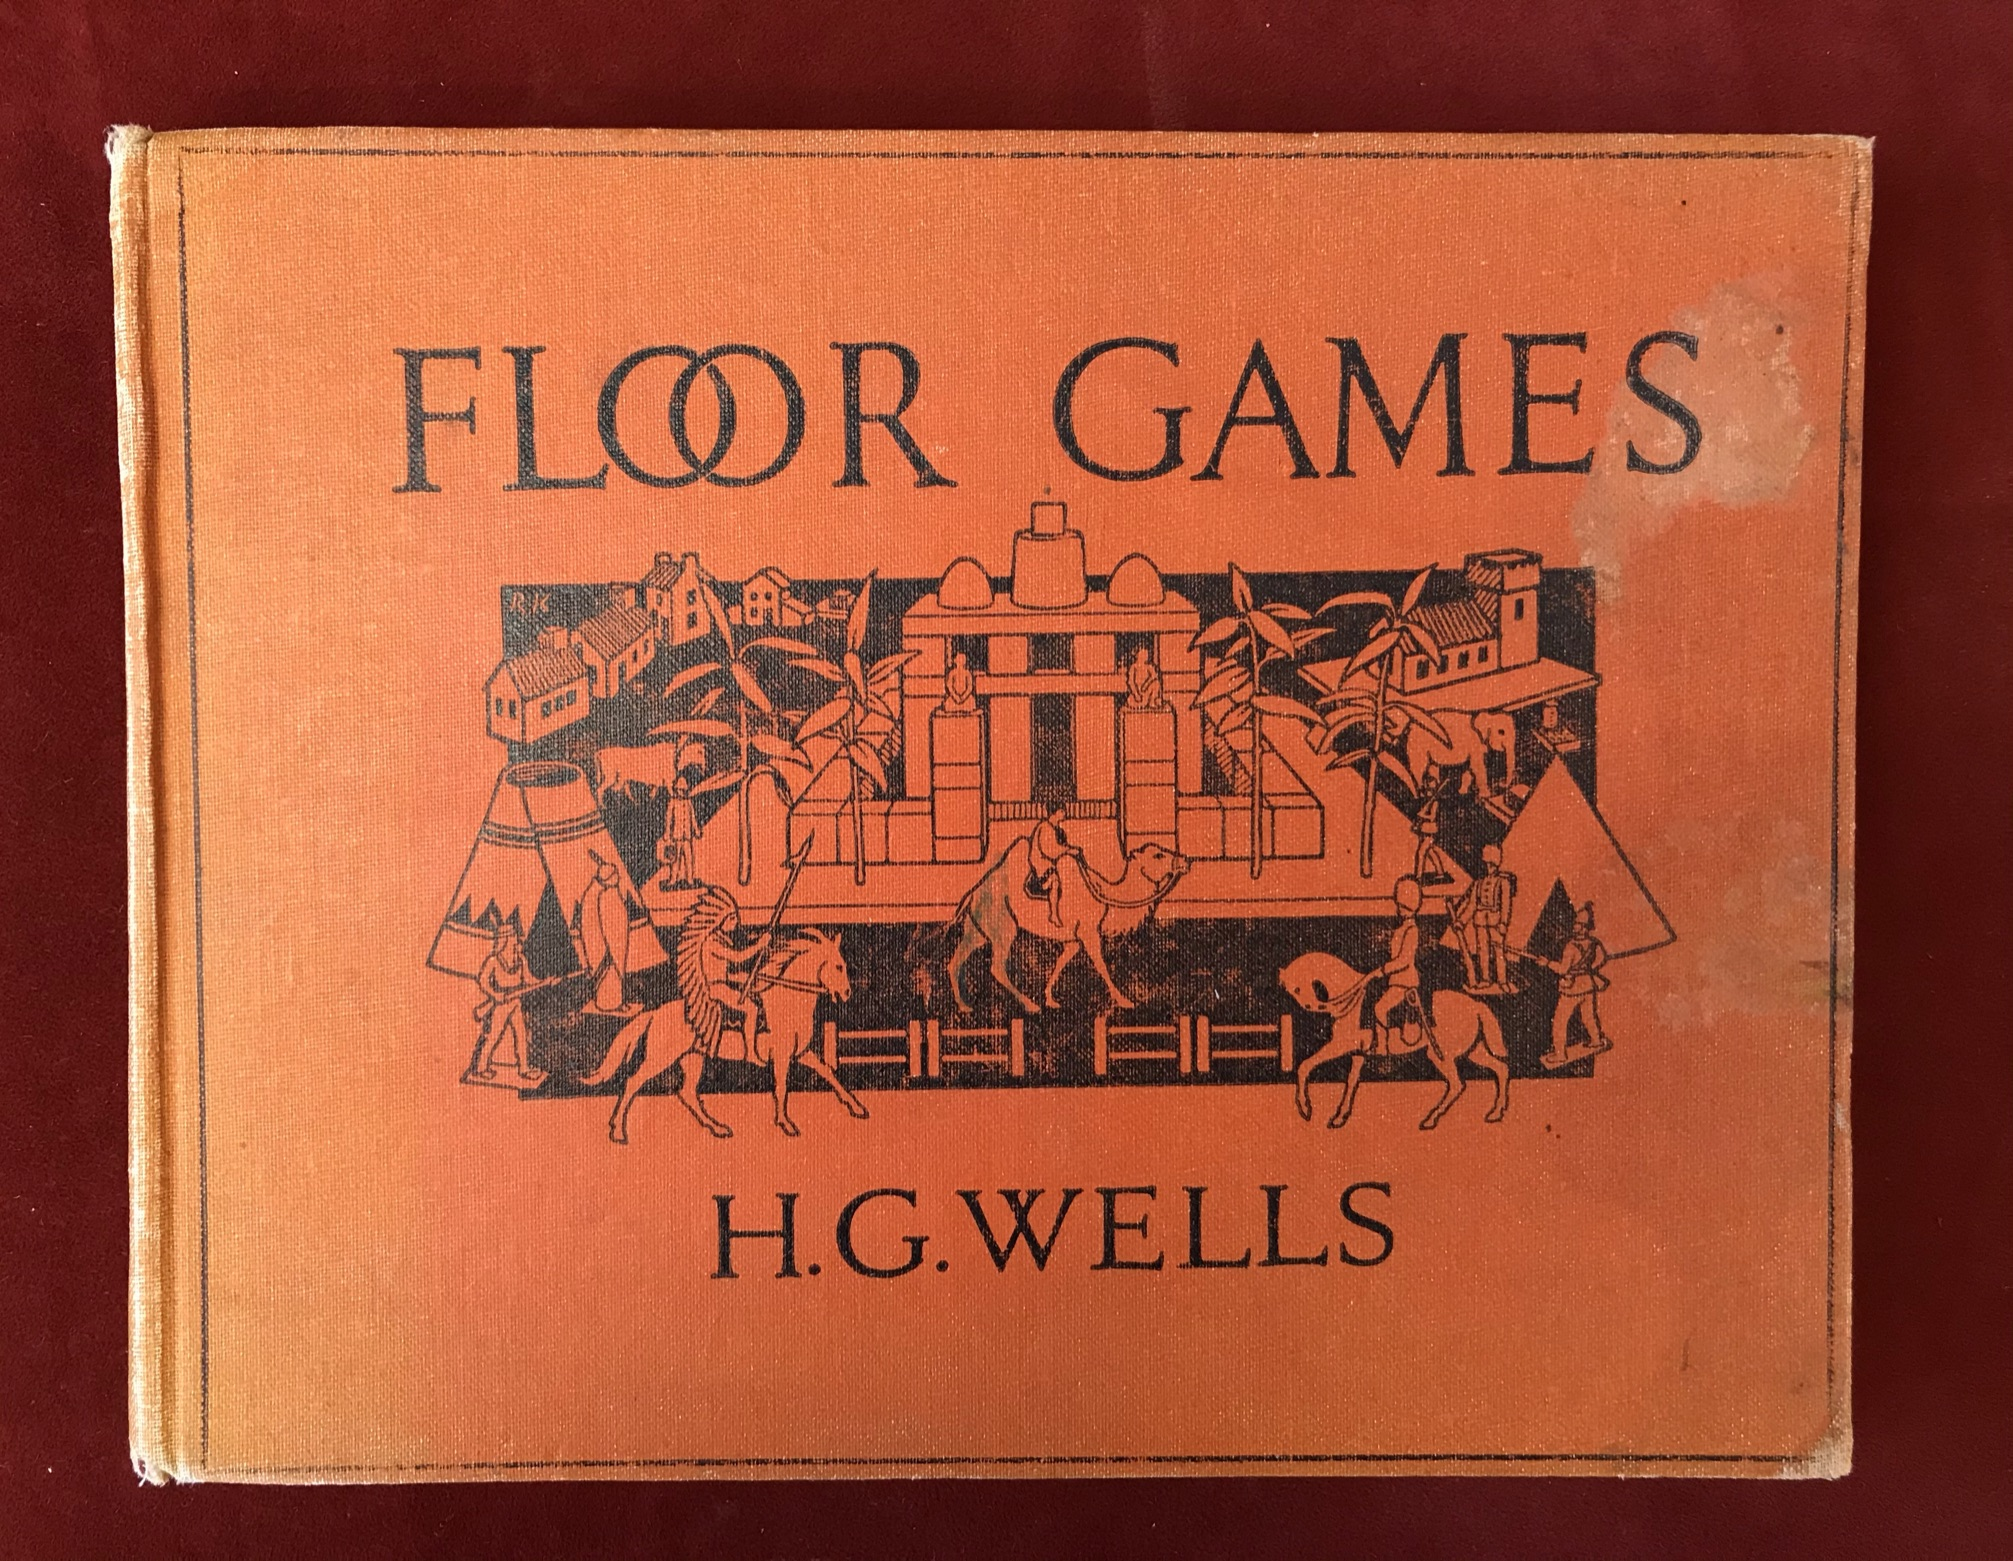 Floor Games1931 edition, slightly stained cover, 1911